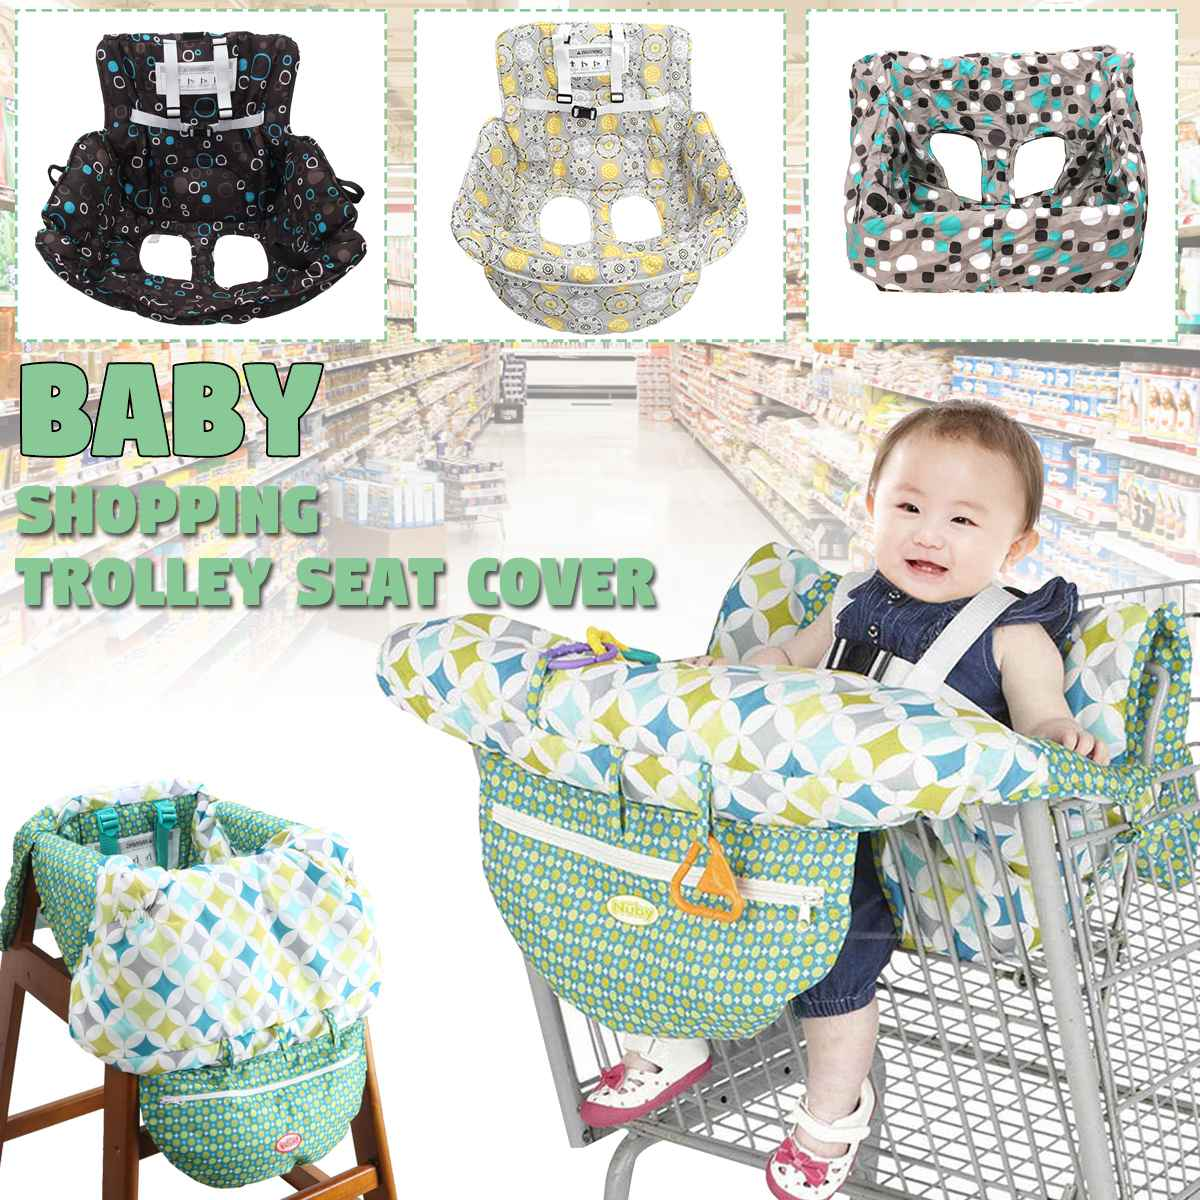 Per 2-in-1 Shopping Cart Cover Polka Dot High Chair Cover Protective Cushion Full Safety Harness Universal Fit Foldable and Washable